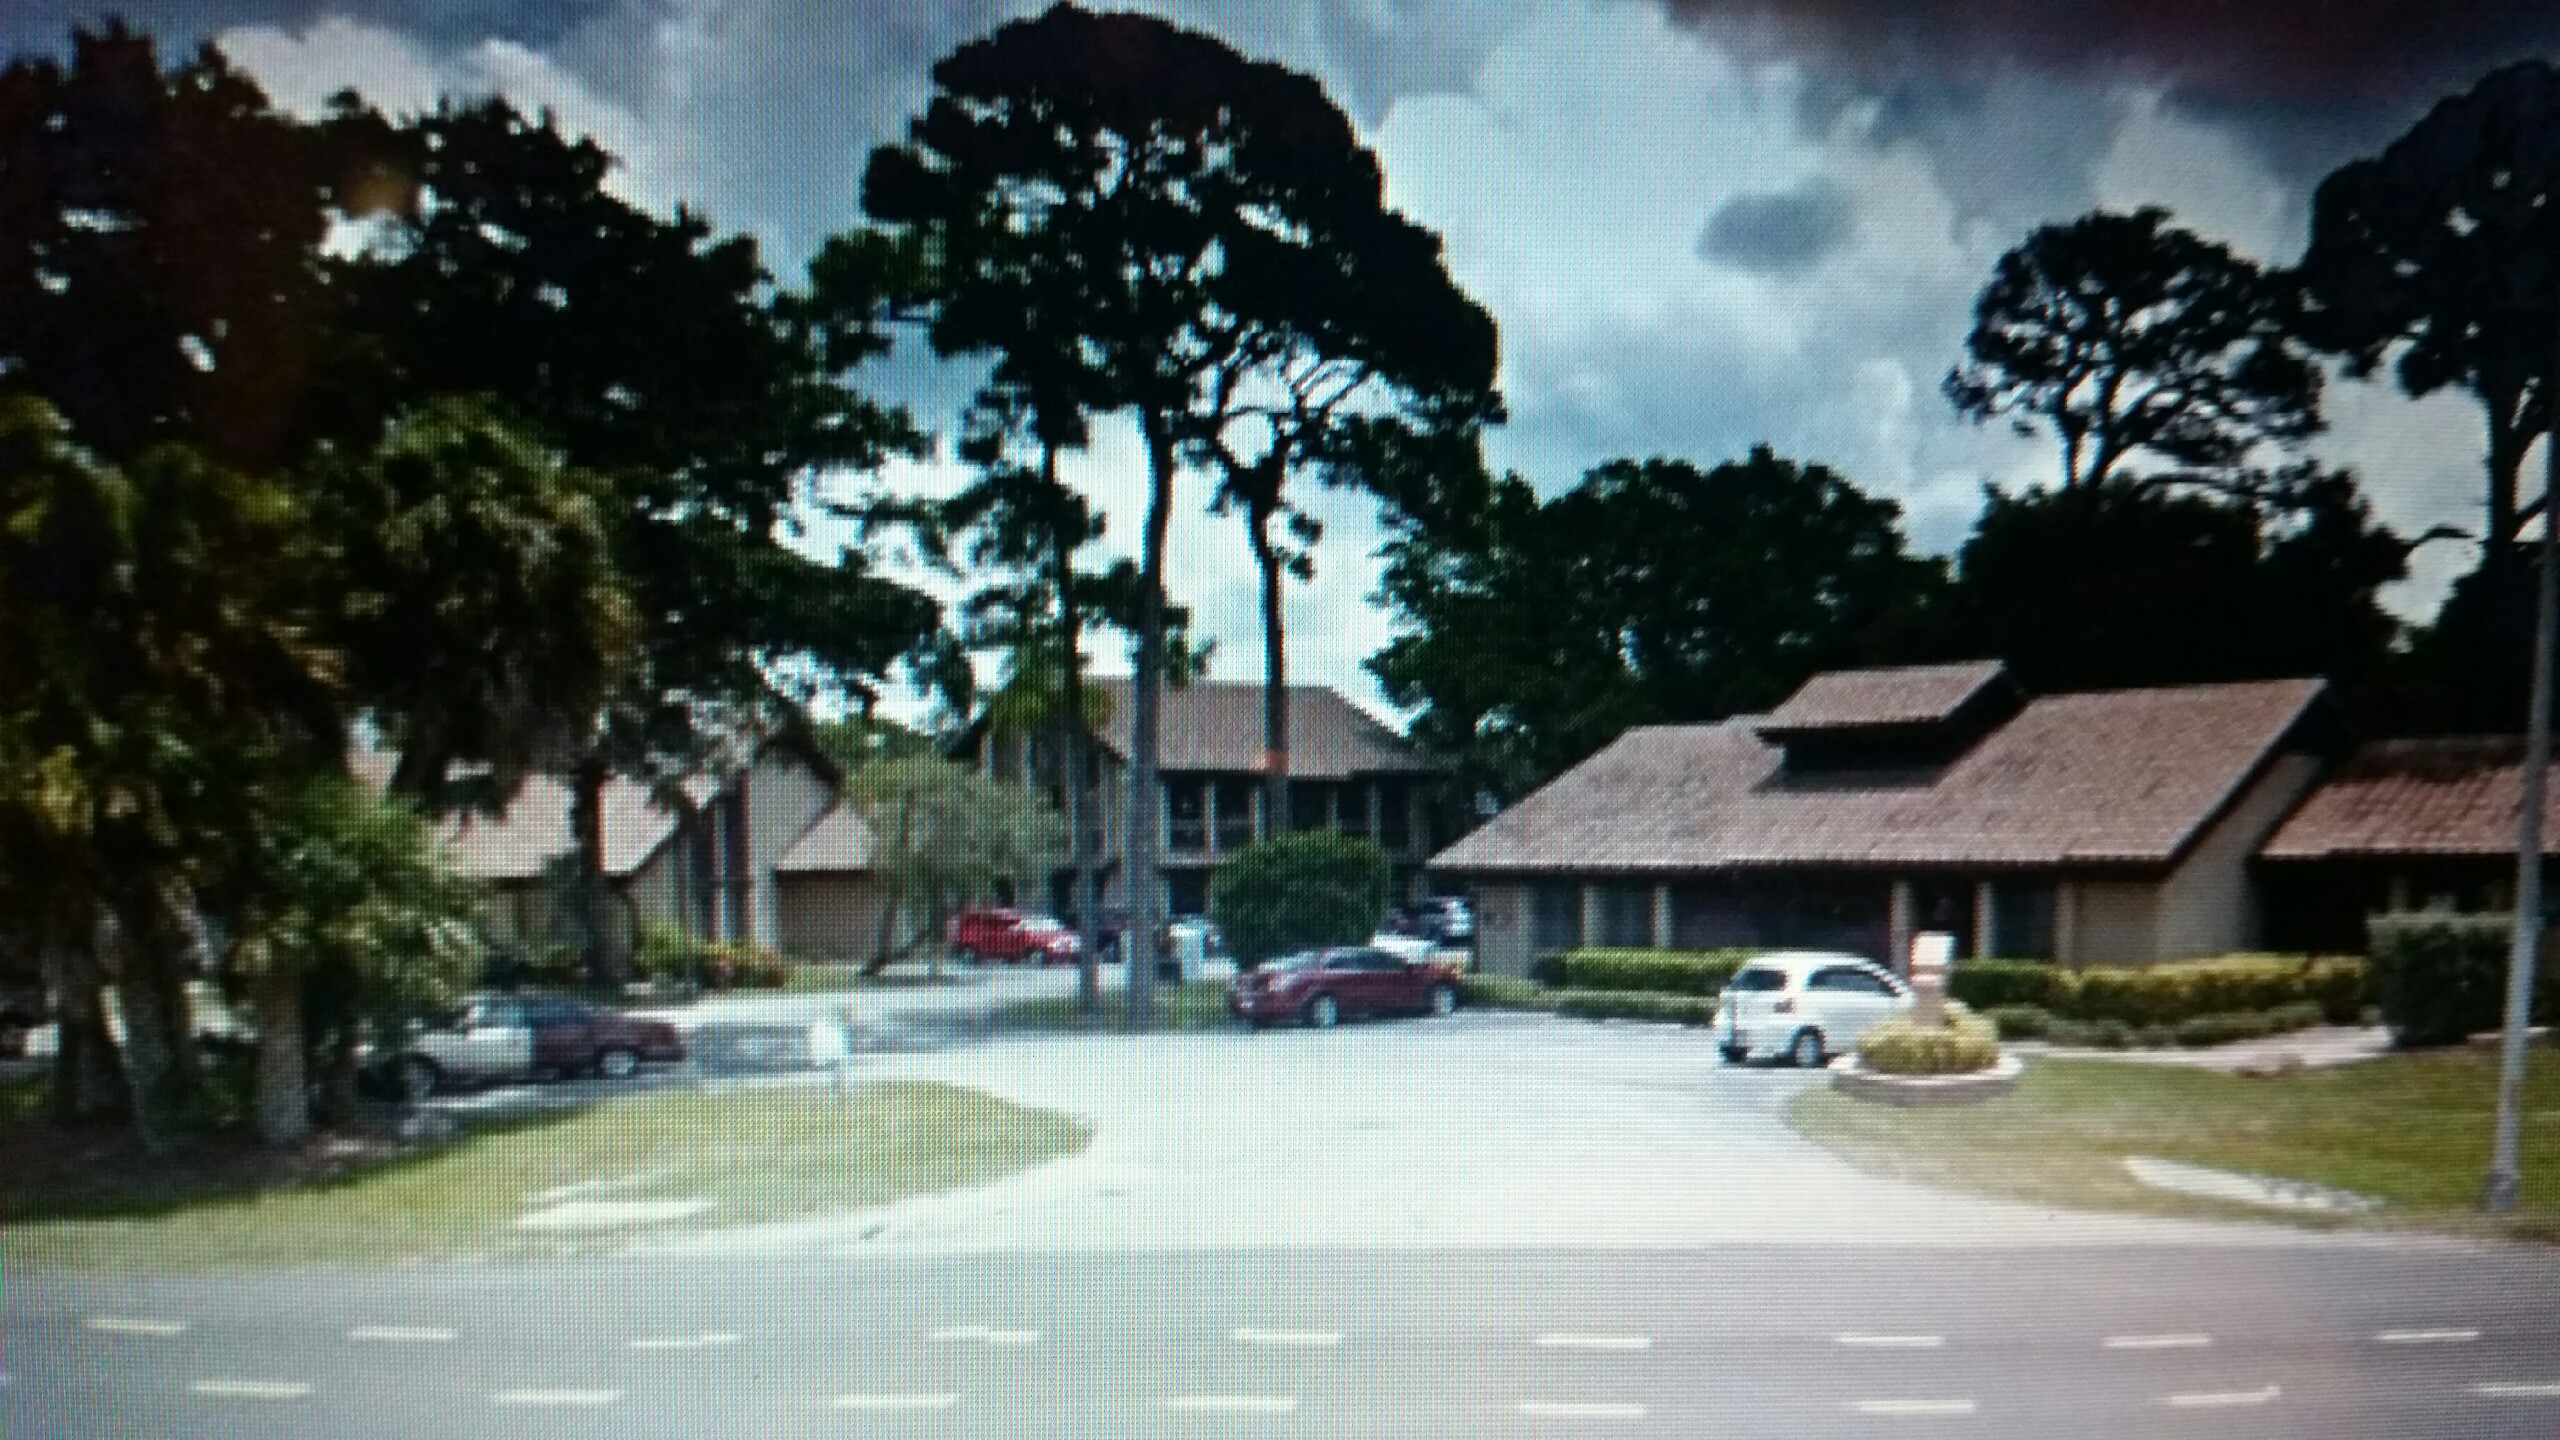 South Sarasota Office for DUI Counseling